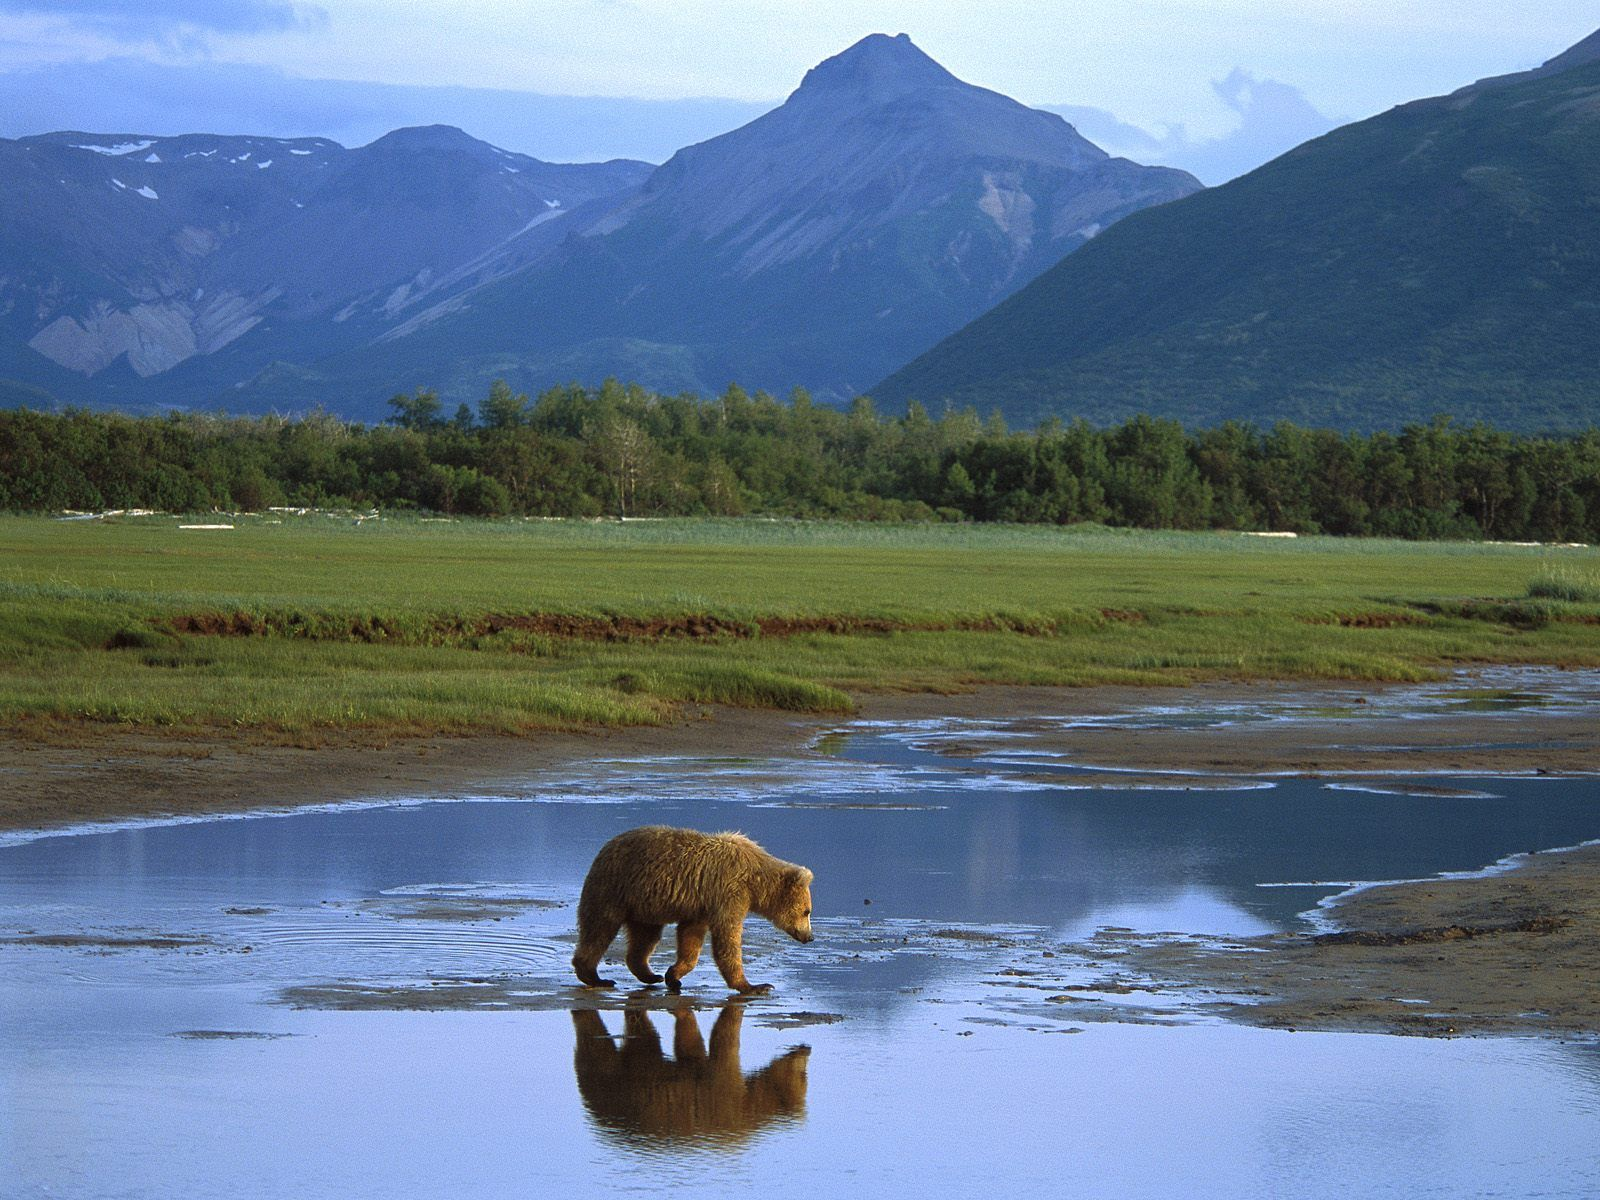 Visiting Alaska – A place of wonderful wilderness